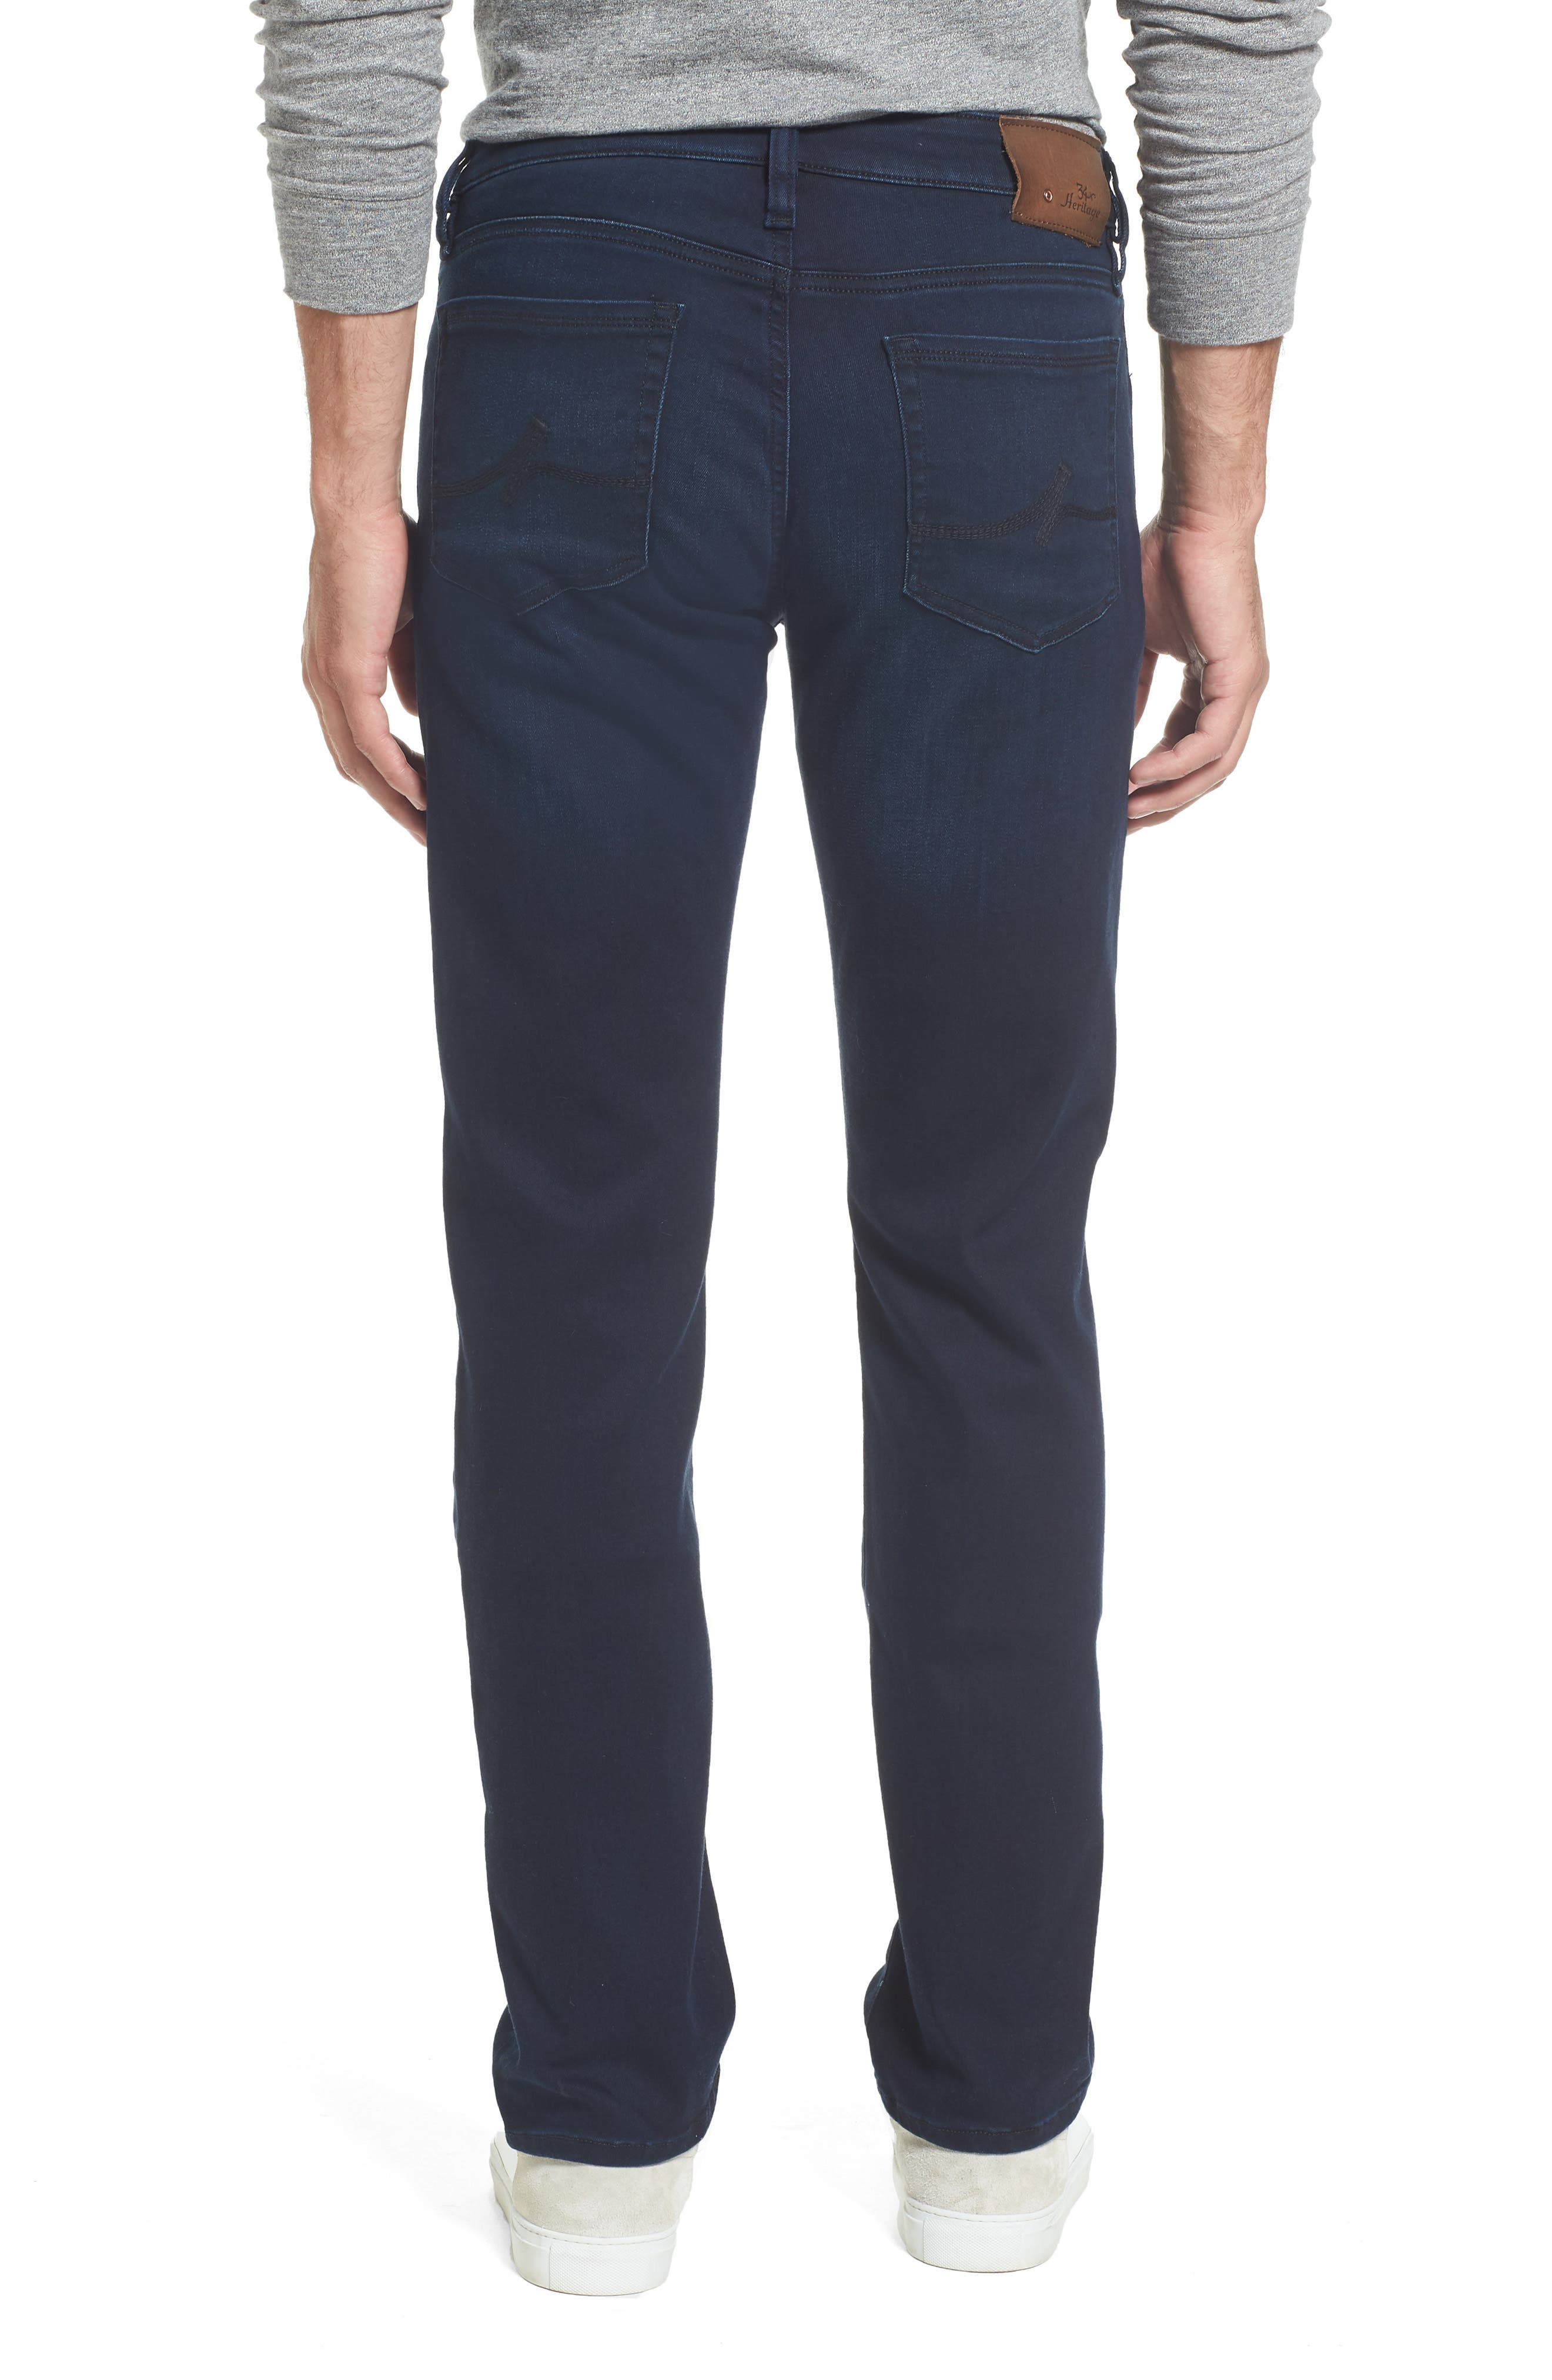 Courage Straight Fit Jeans,                             Alternate thumbnail 2, color,                             401